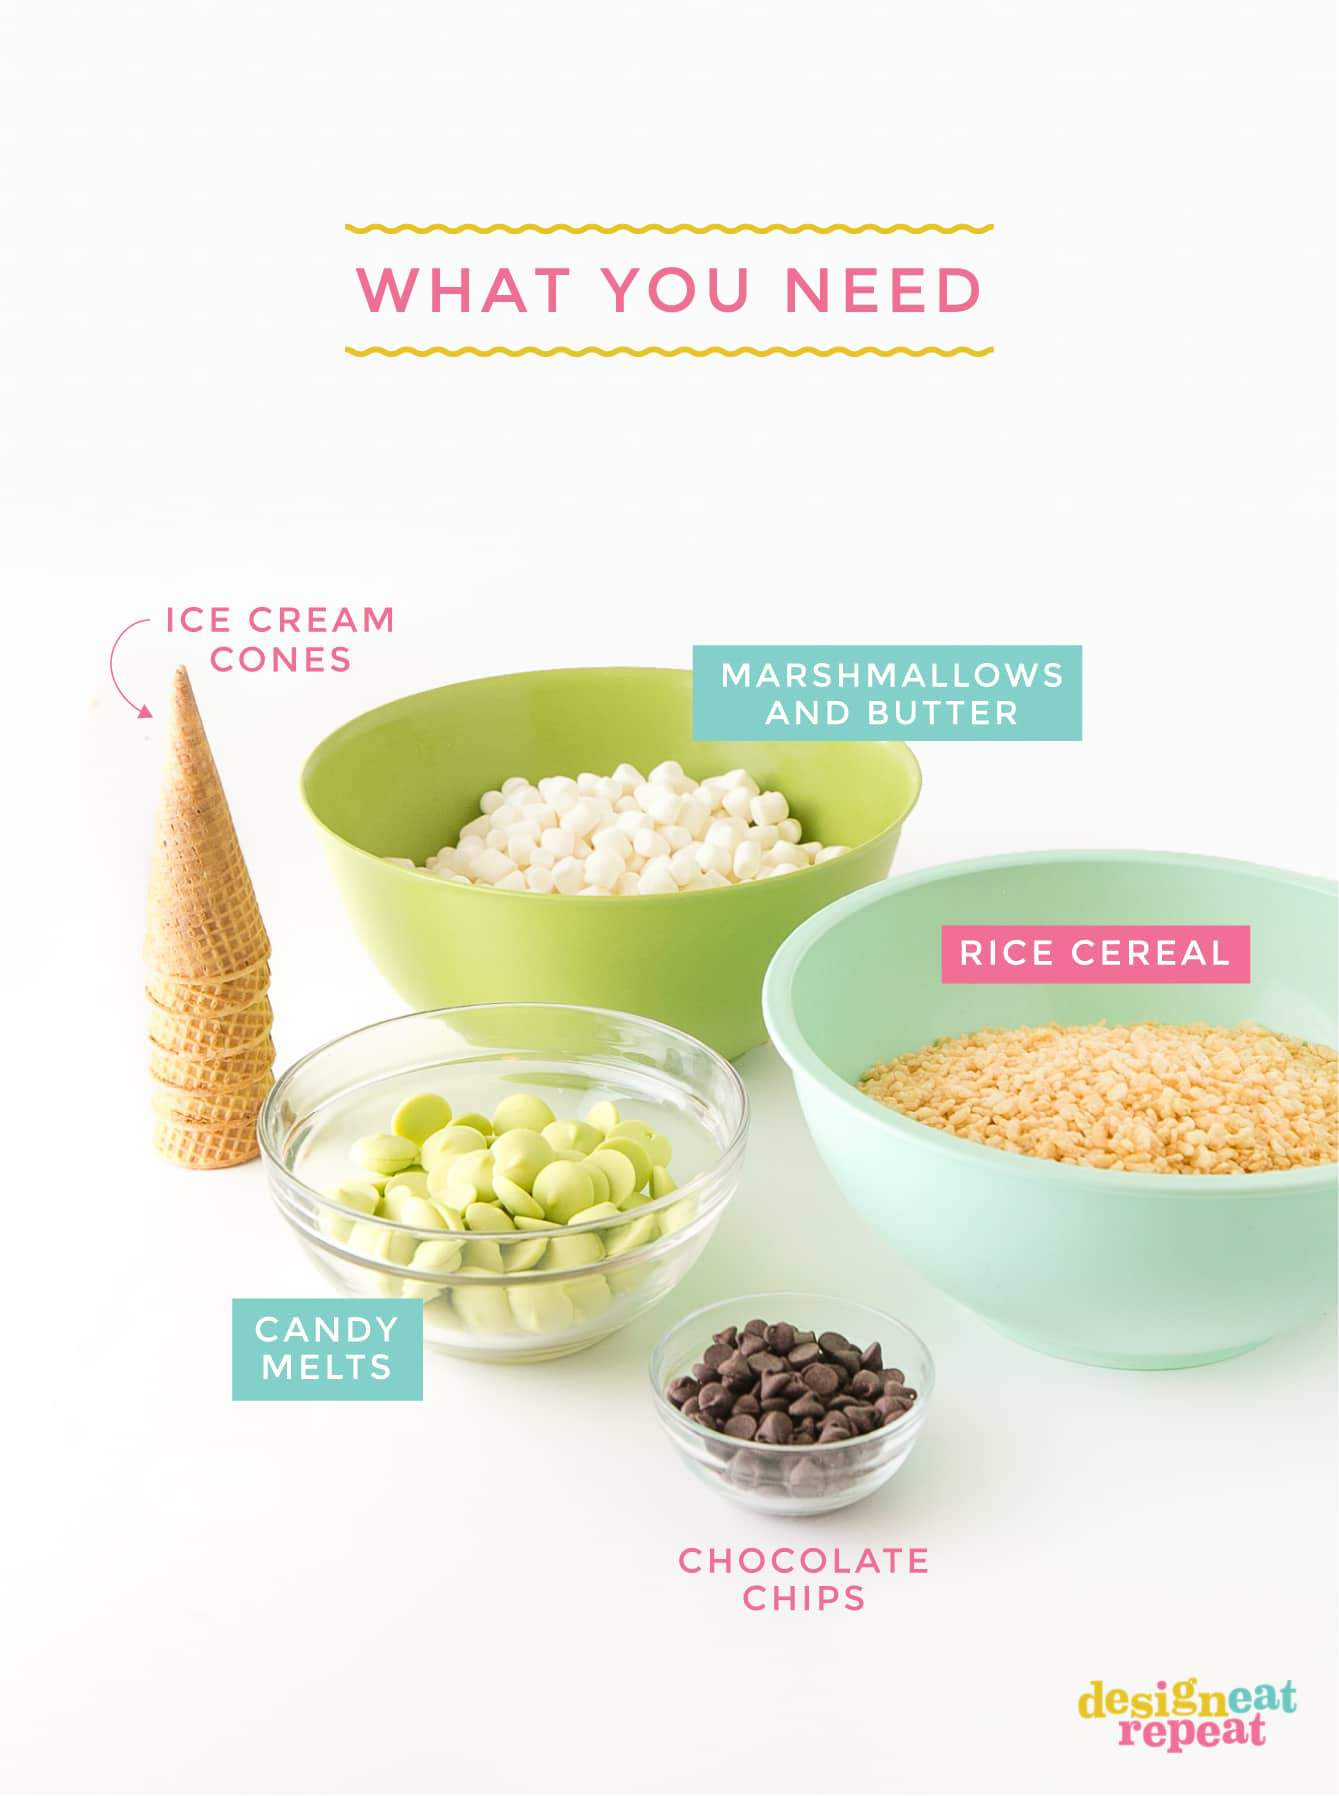 Ingredients for Cute Zombie Halloween Rice Krispie Treats - Green Bowl of Marshmallows, Blue Bowl of Rice Krispy Cereal, Bowl of Green Candy Melts, Stack of Ice Cream Cones, Bowl of Chocolate Chips